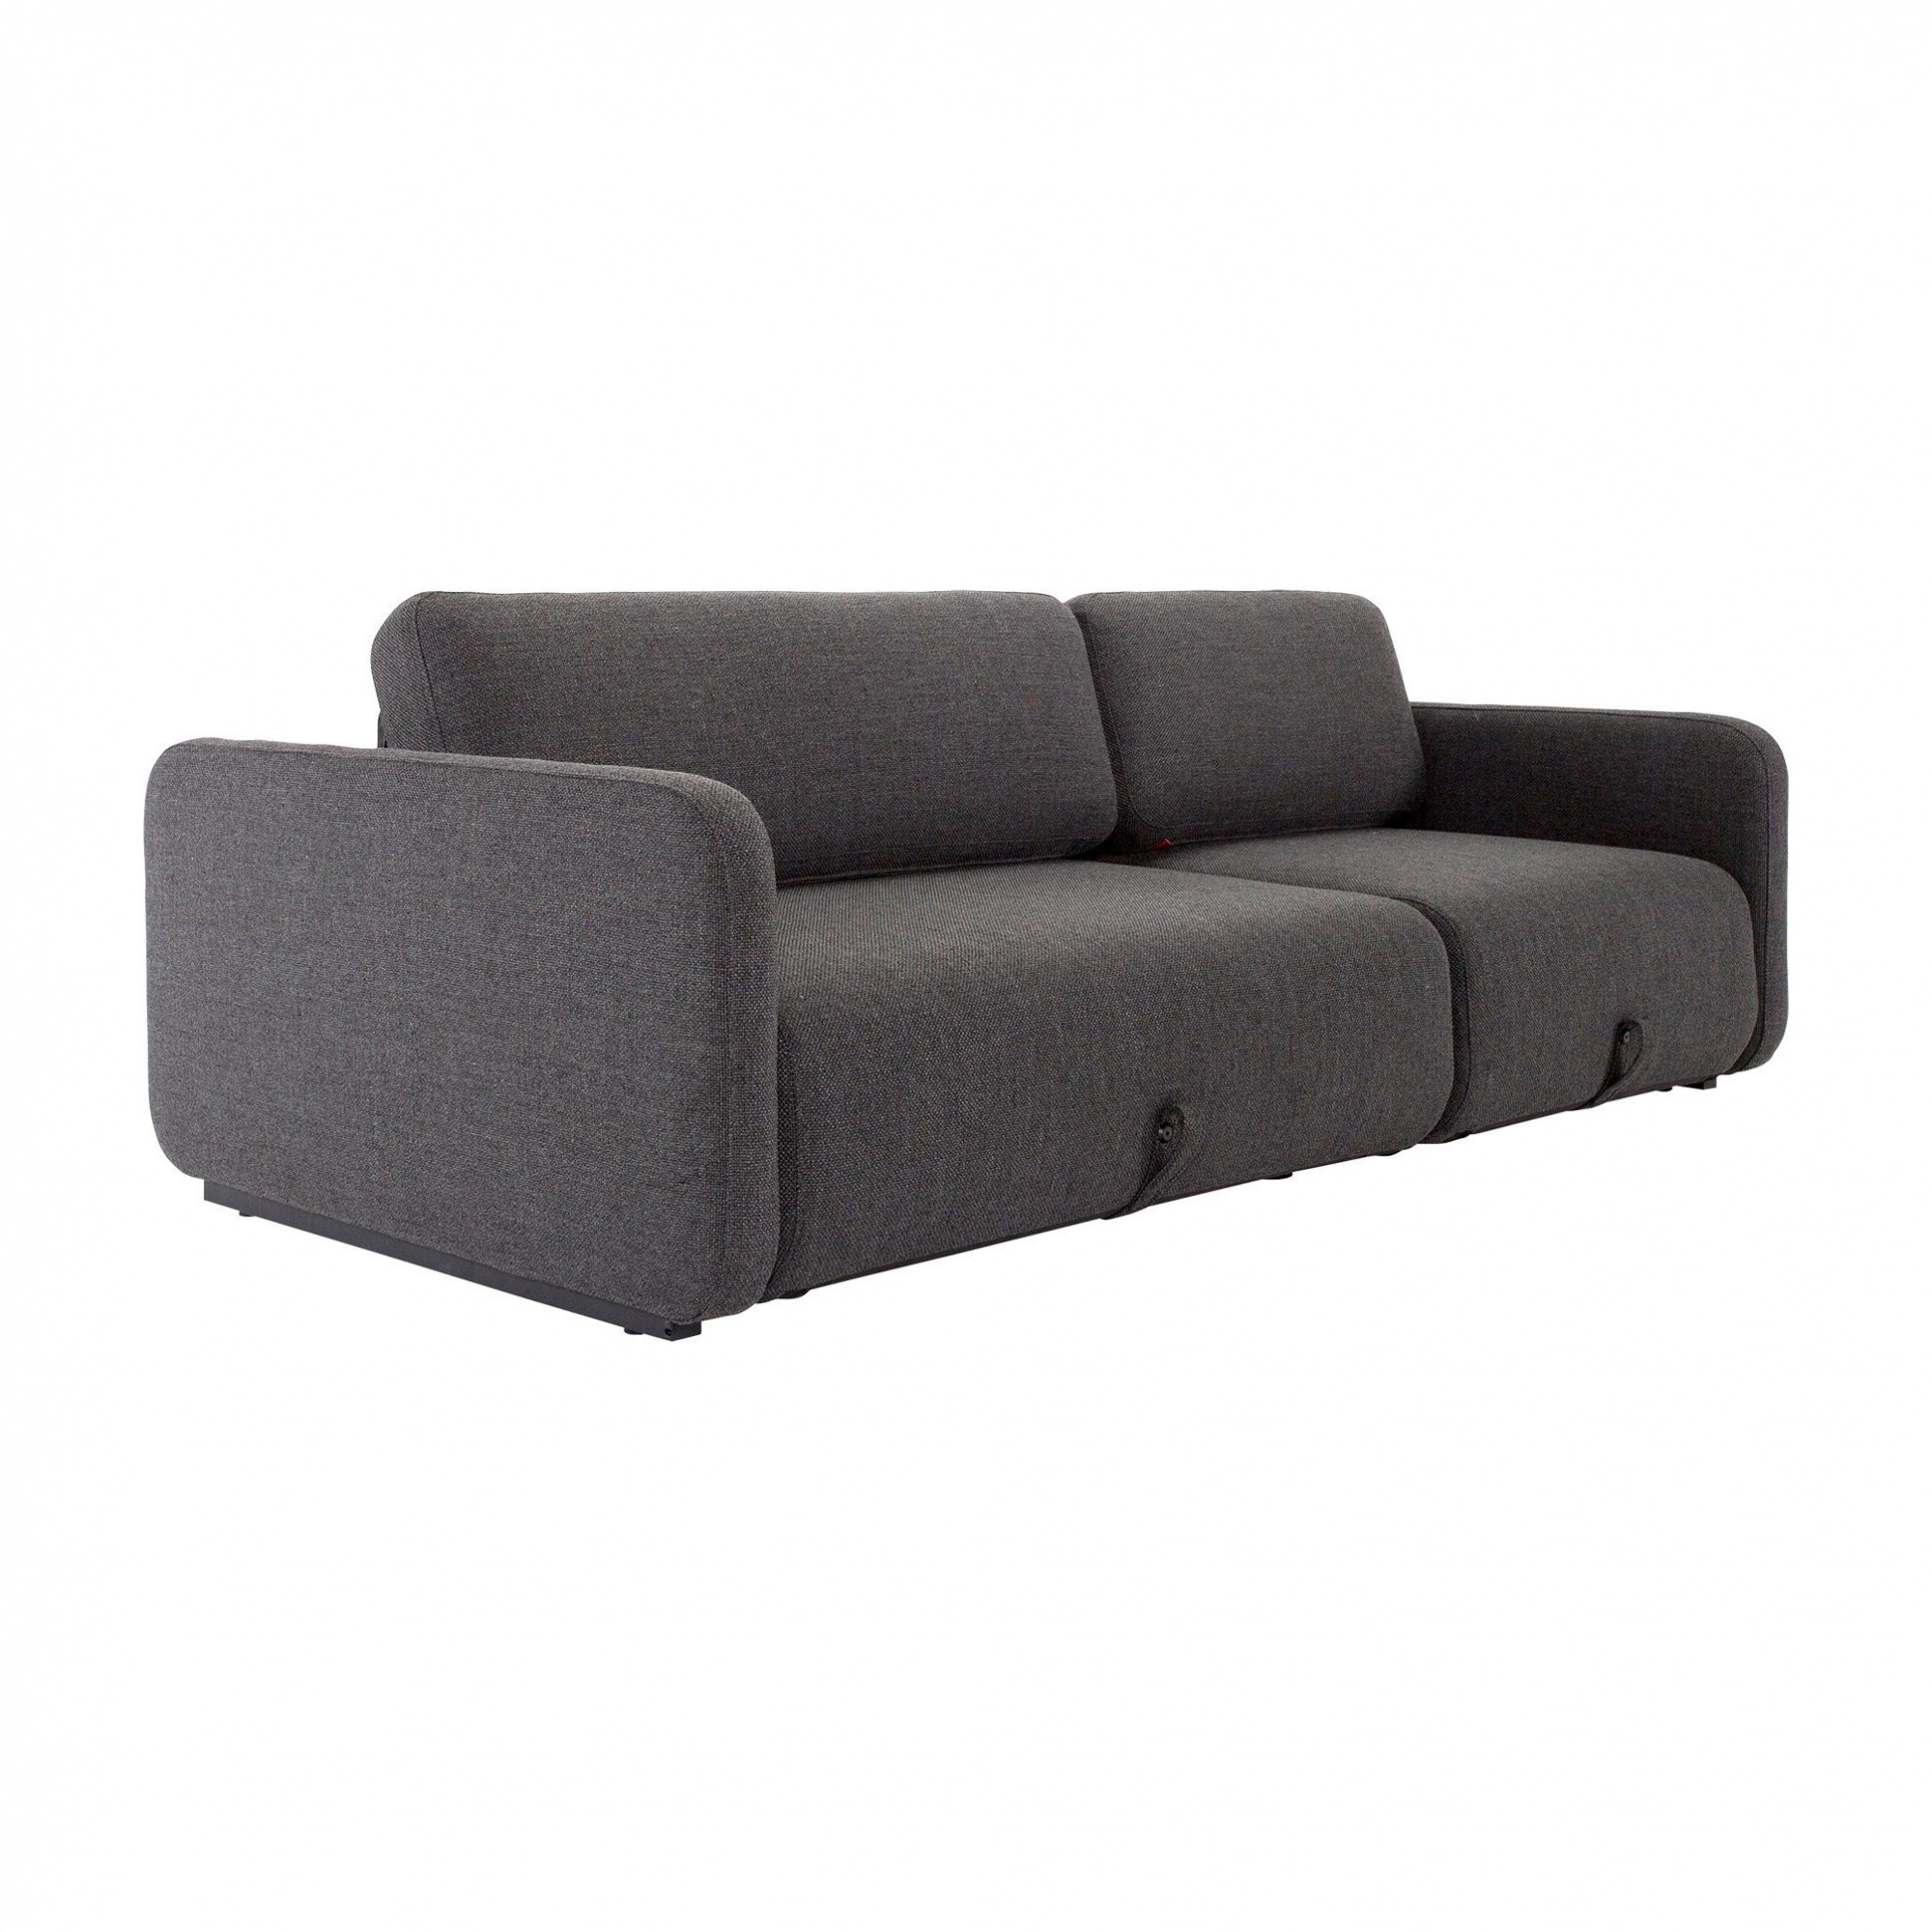 Picture of: Innovation Vogan Sofa Bed 218x120cm Ambientedirect